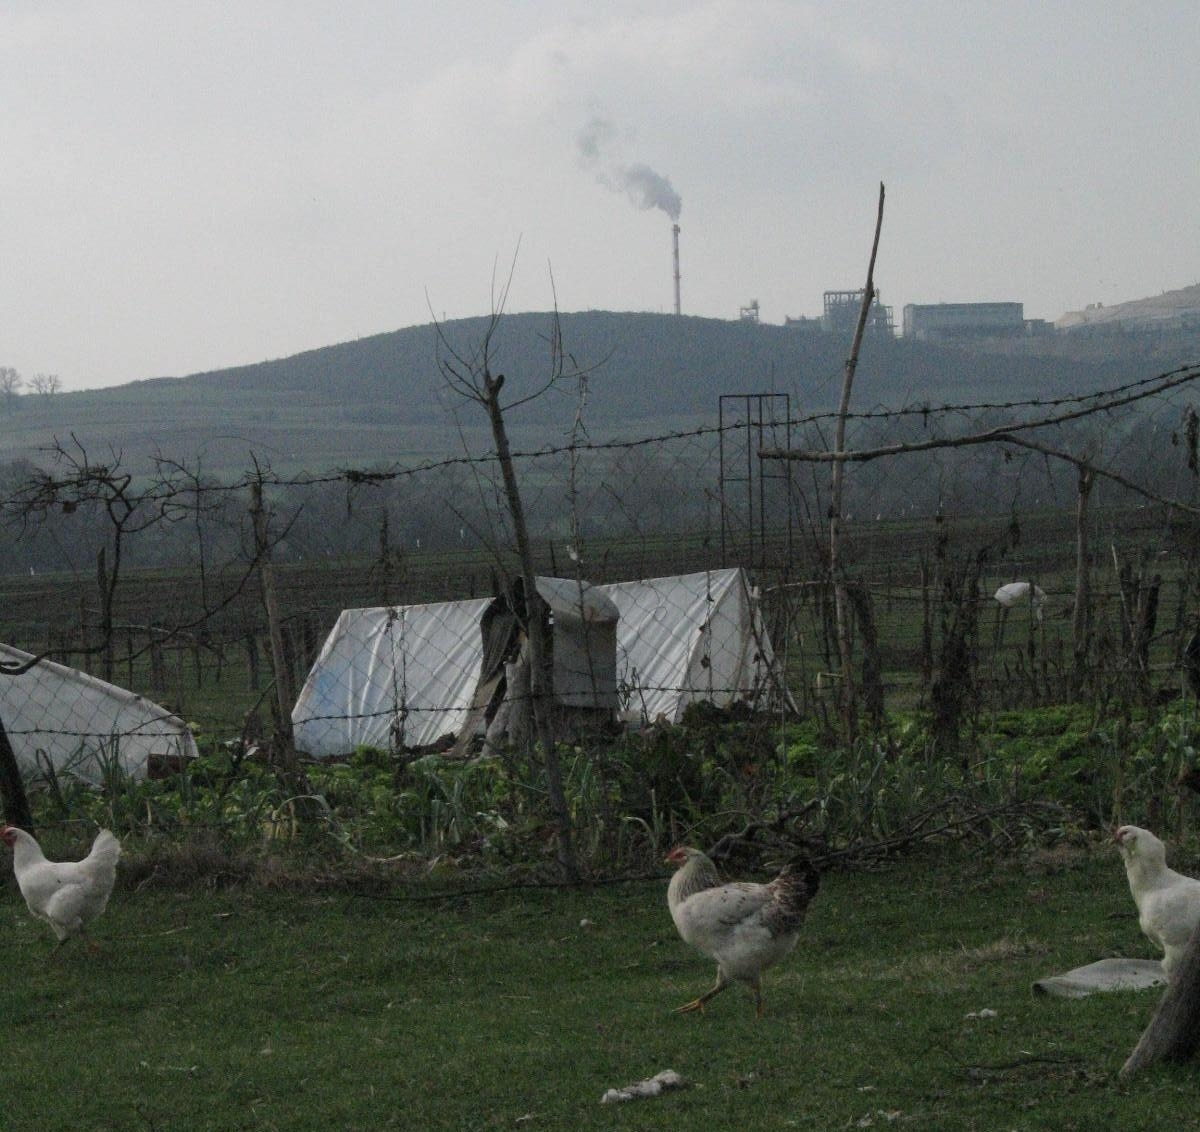 Chickens in Turkey with smokestack in background